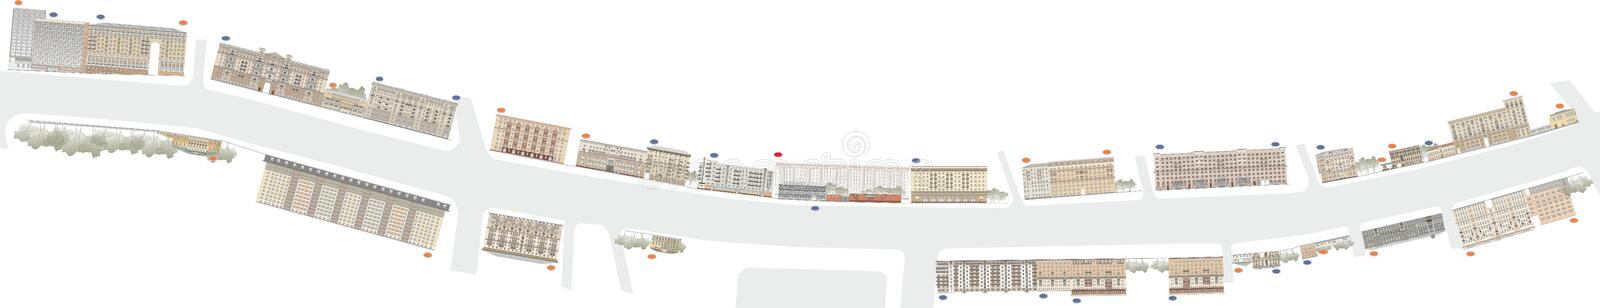 Buildings and structures of the early and mid twentieth century vector illustration